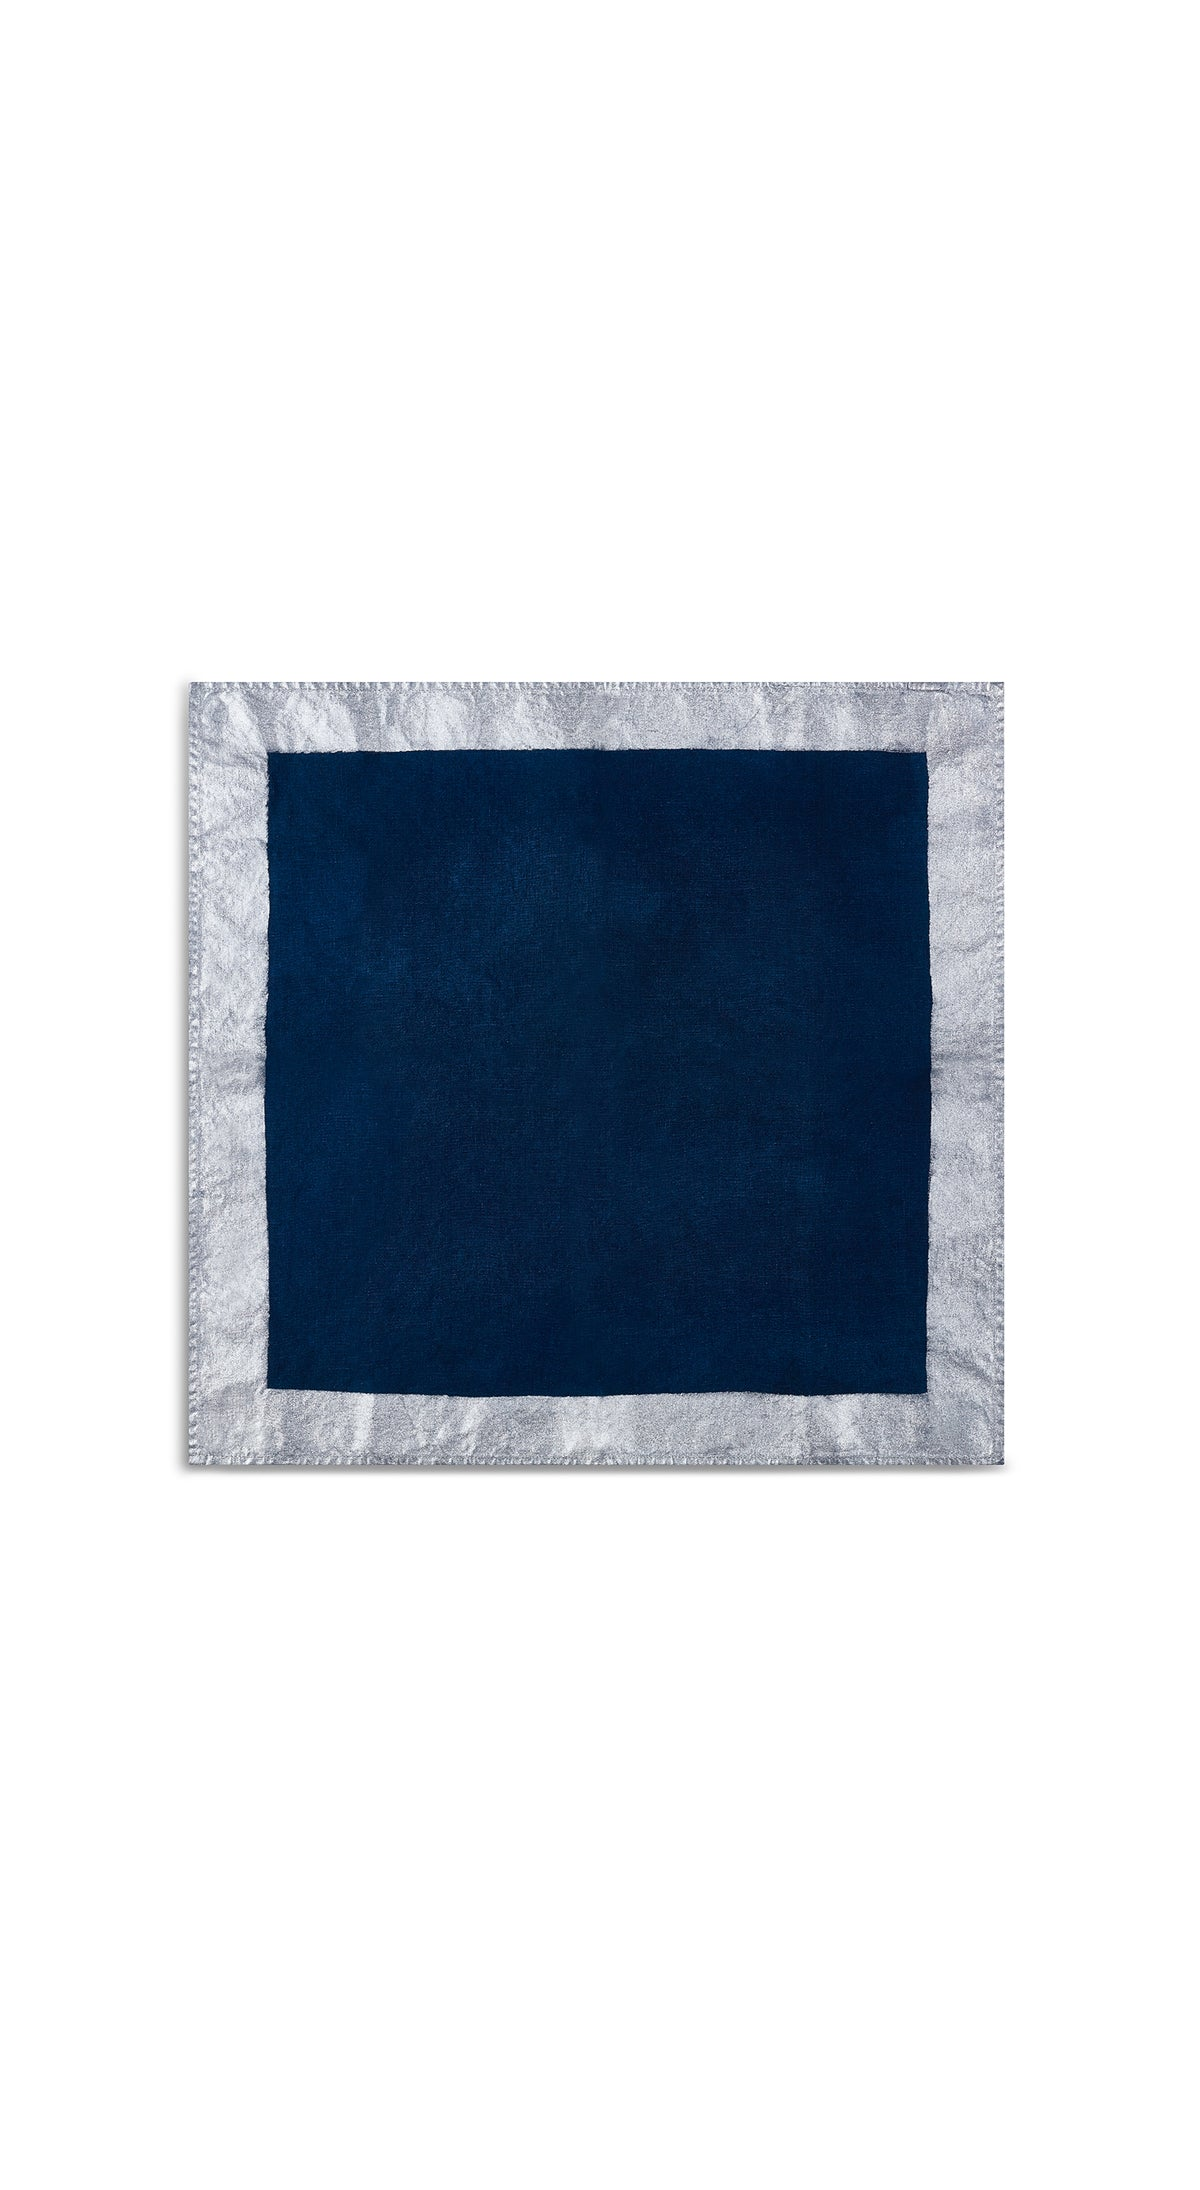 Silver Edge Linen Napkin in Midnight Blue